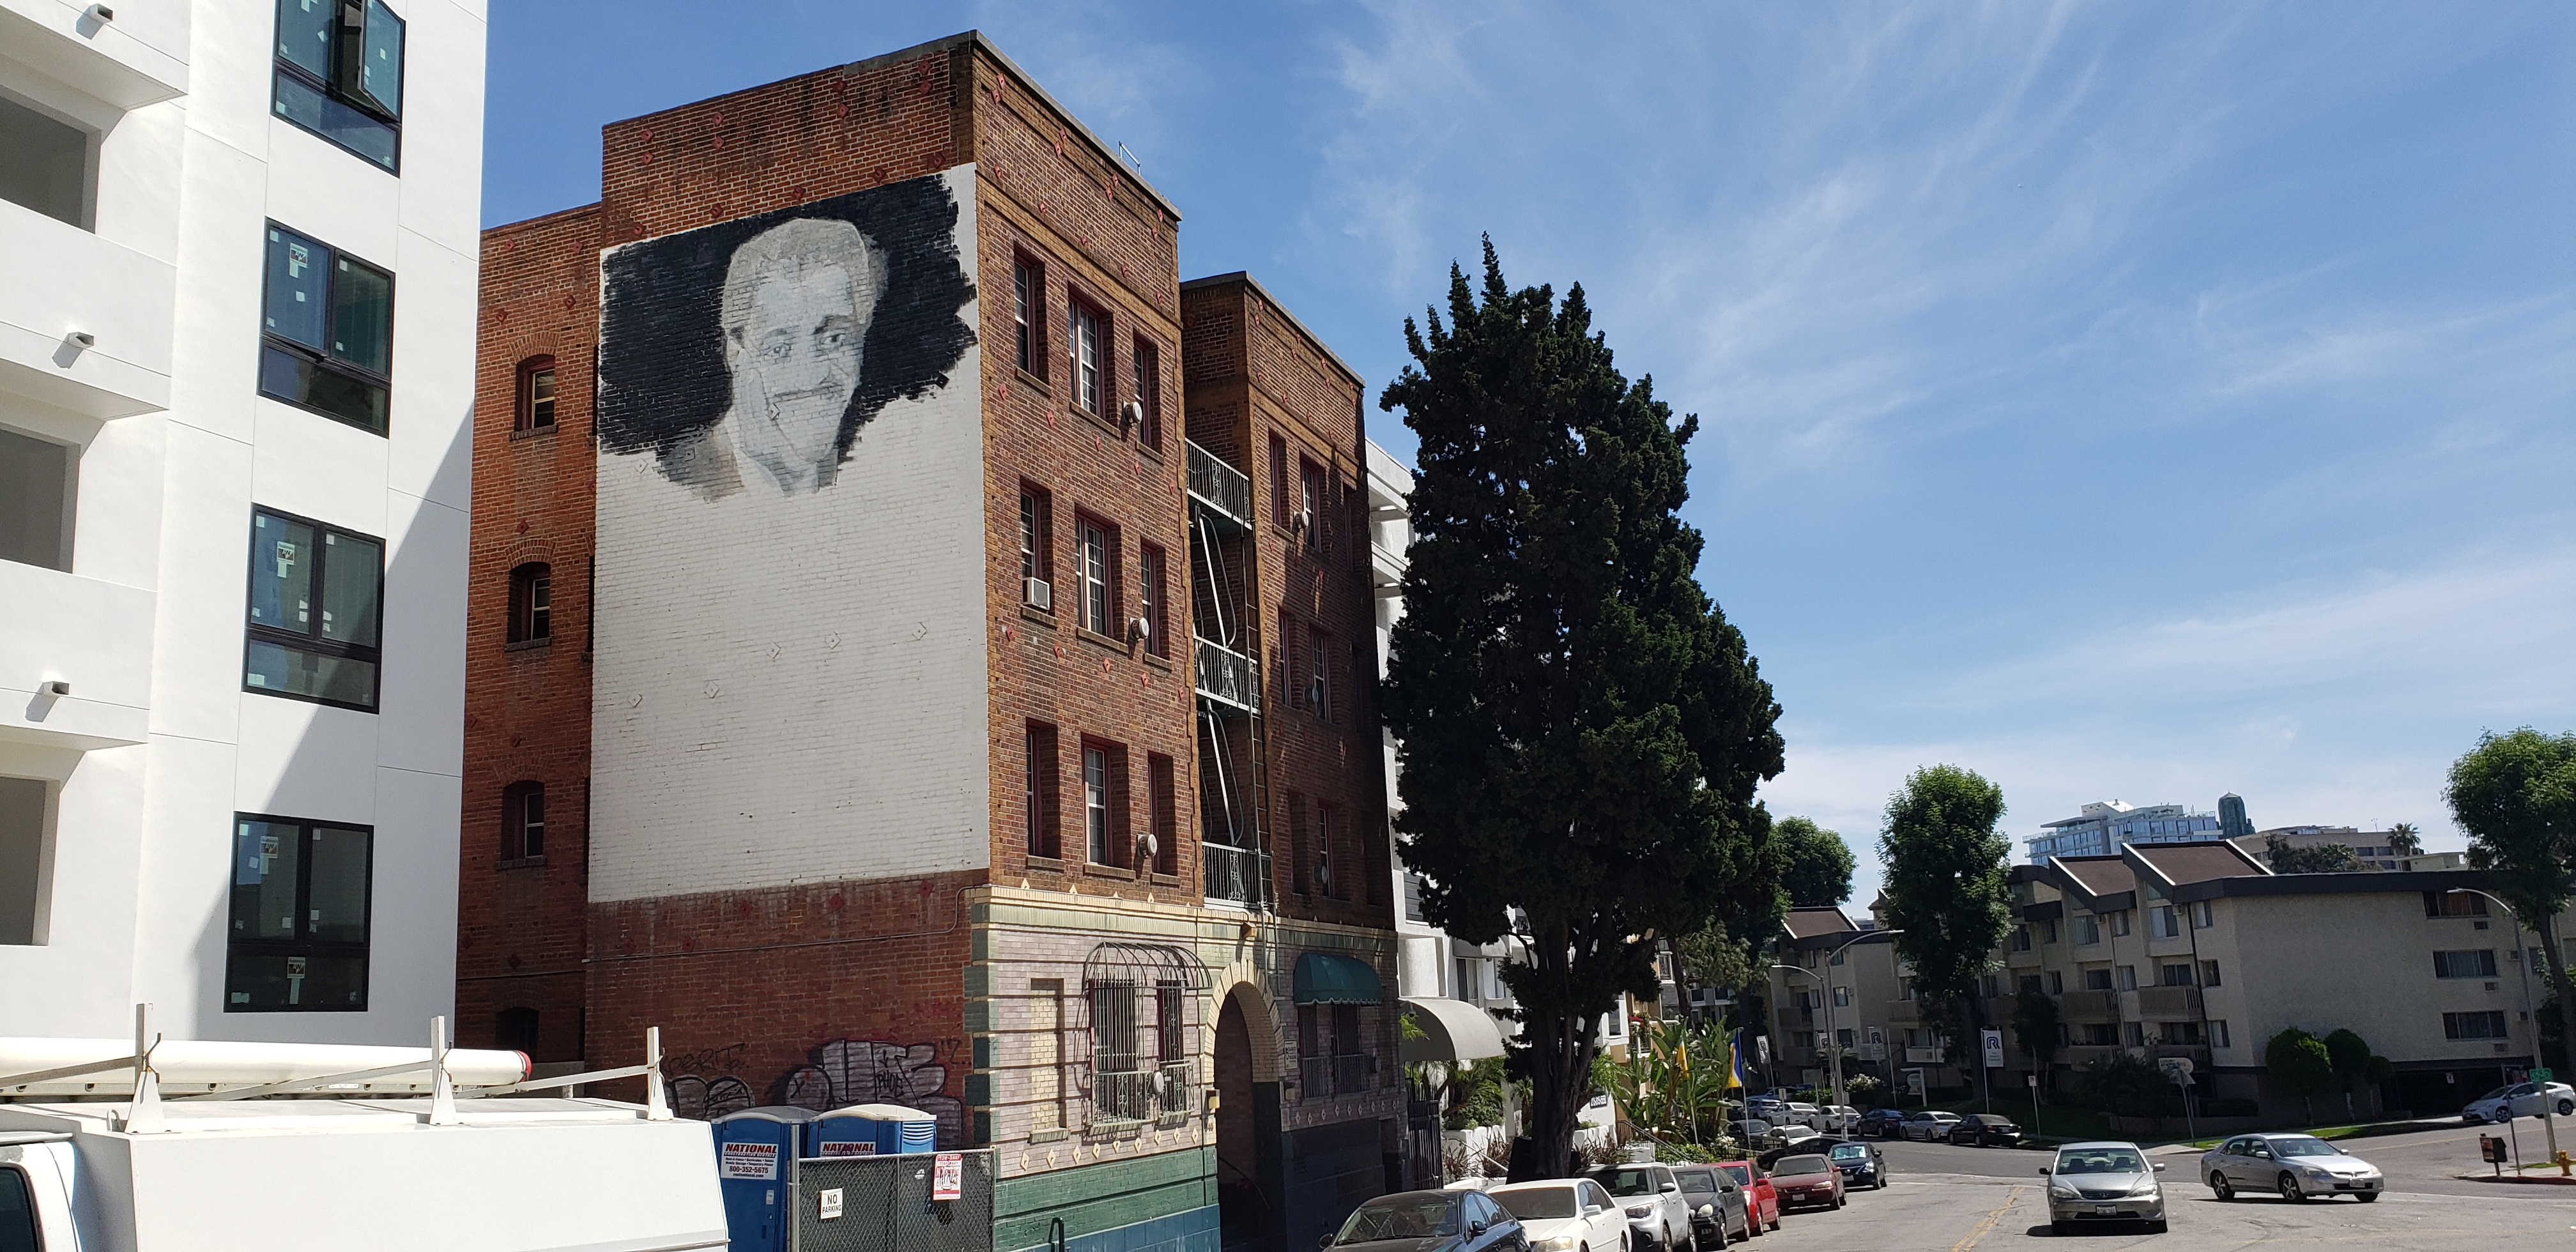 Street view of Reno Apartments with an unfinished mural of Sammy Davis Jr on the side of the building and large tree in front